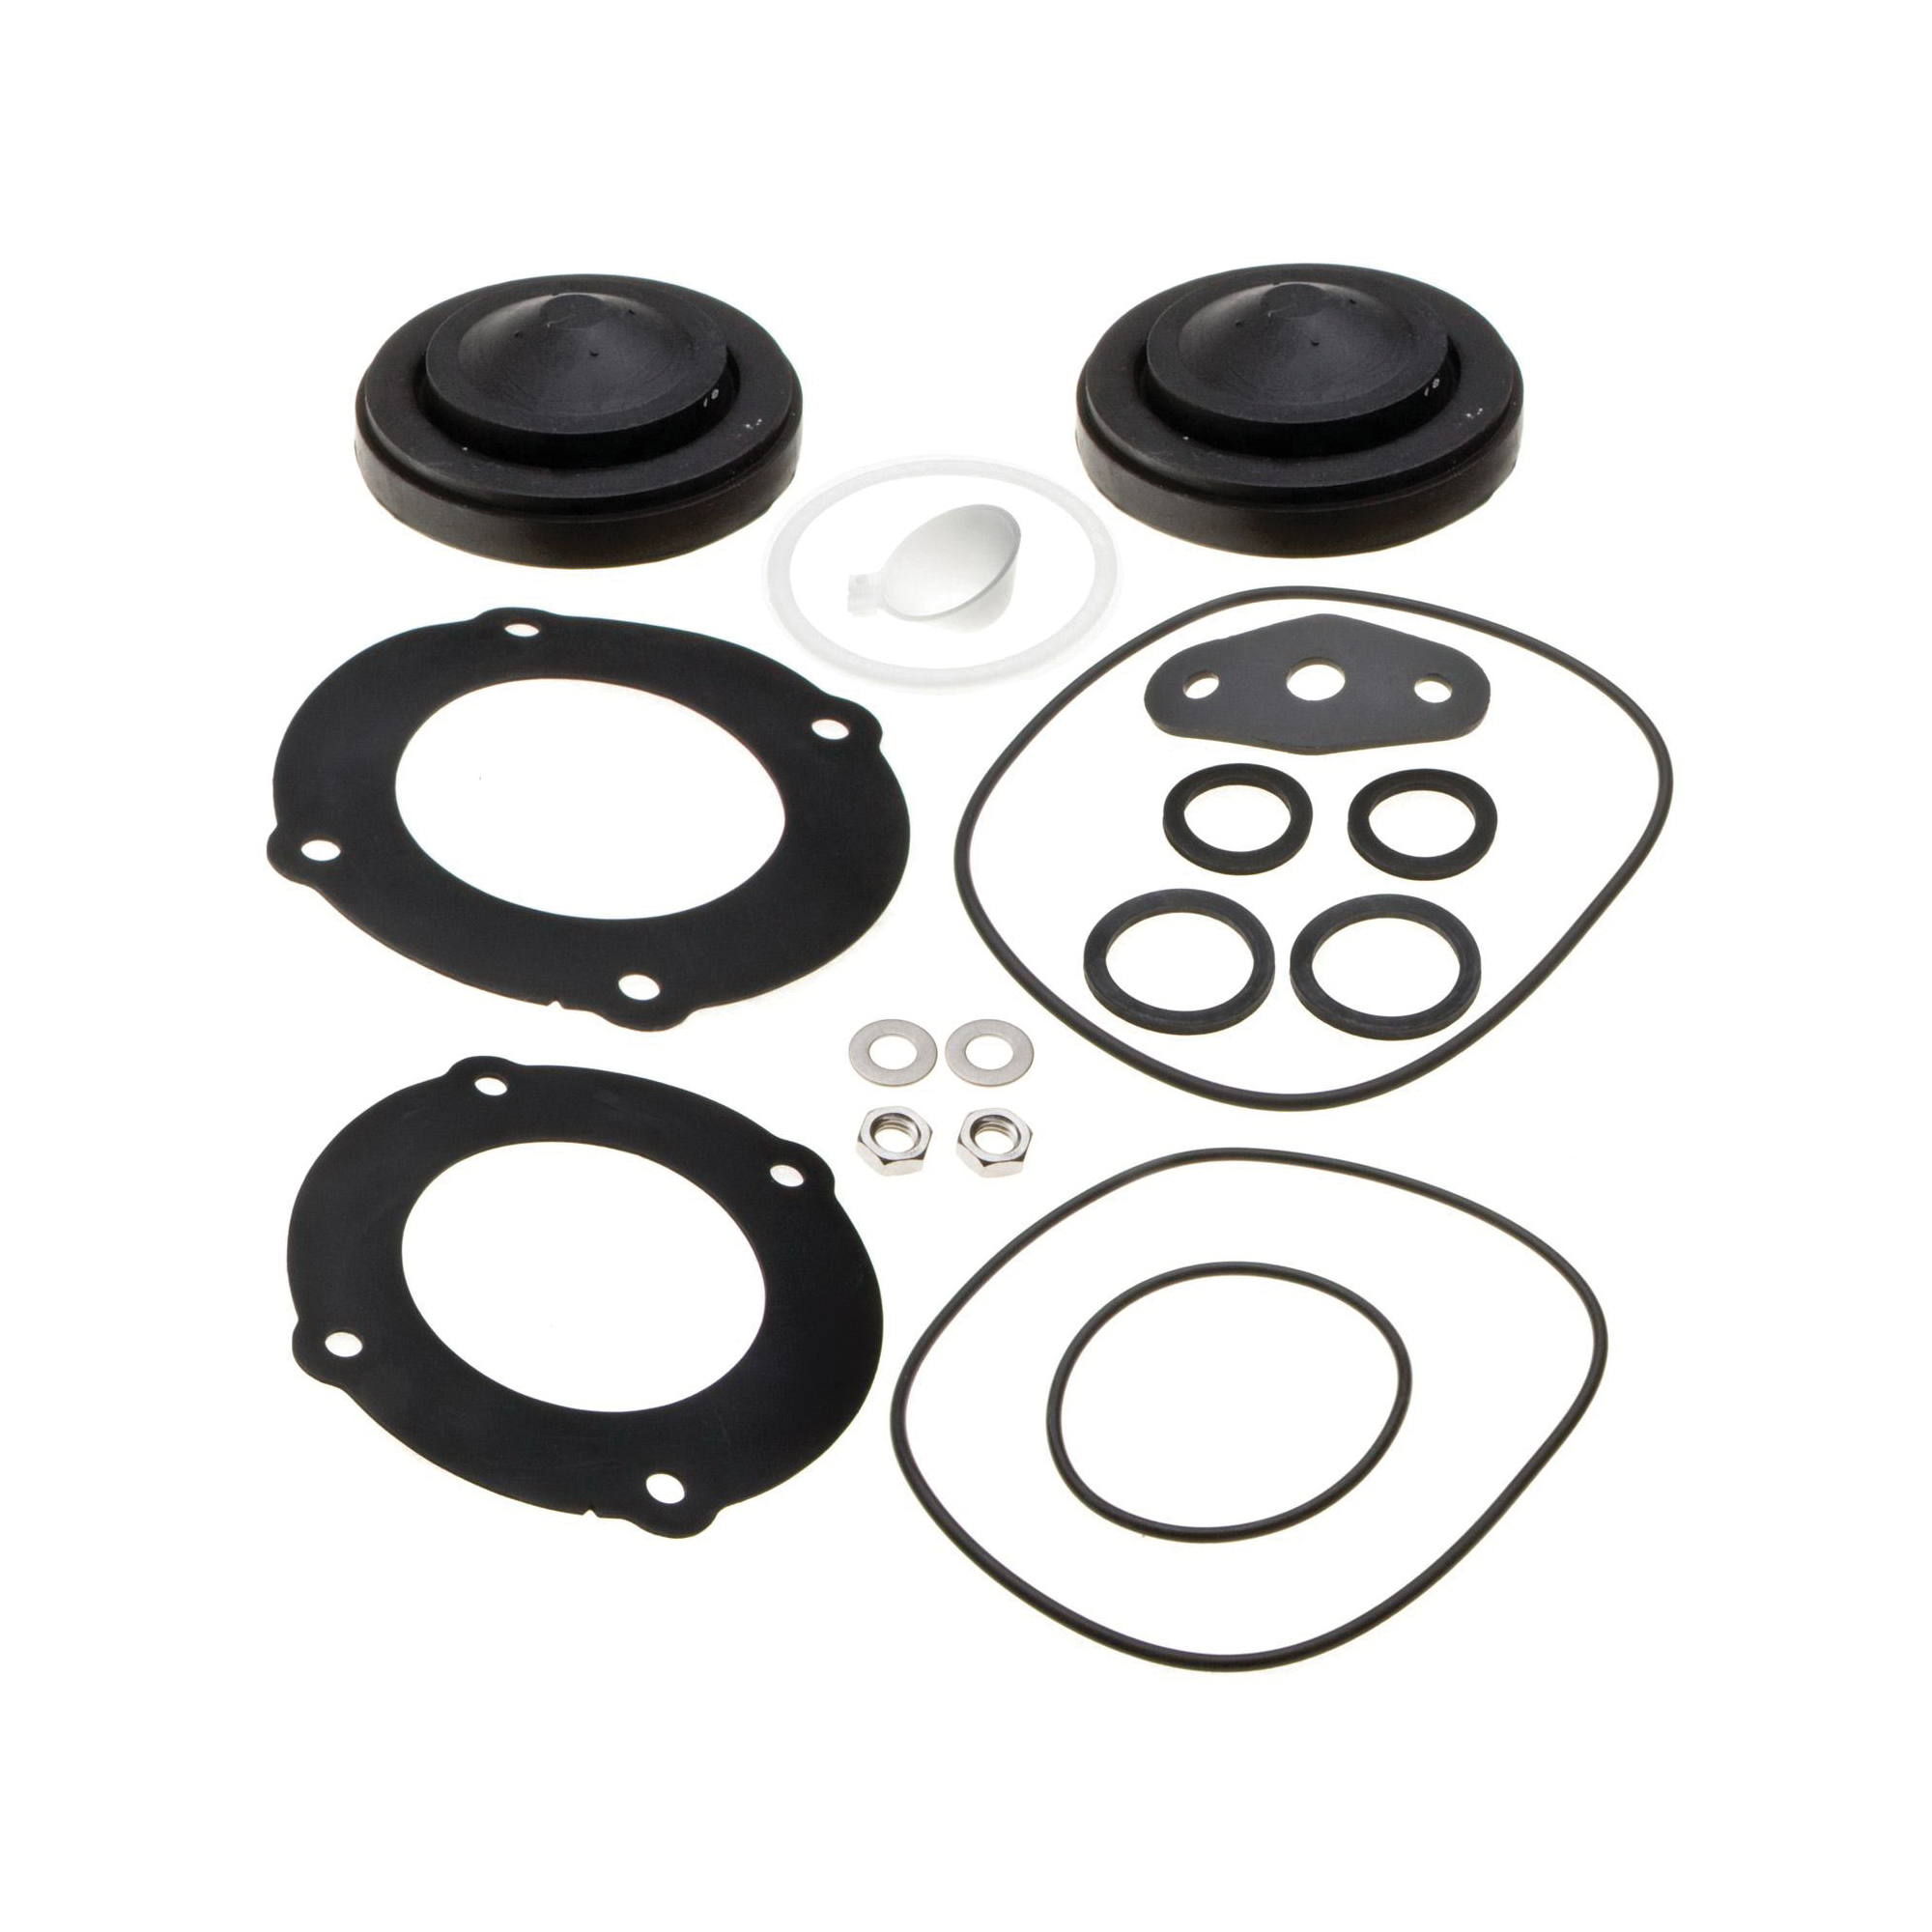 Febco® 905249 Rubber Parts Kit, For Use With MasterSeries® 856 Series 2-1/2 to 3 in In-Line Design Double Check Detector Assemblies